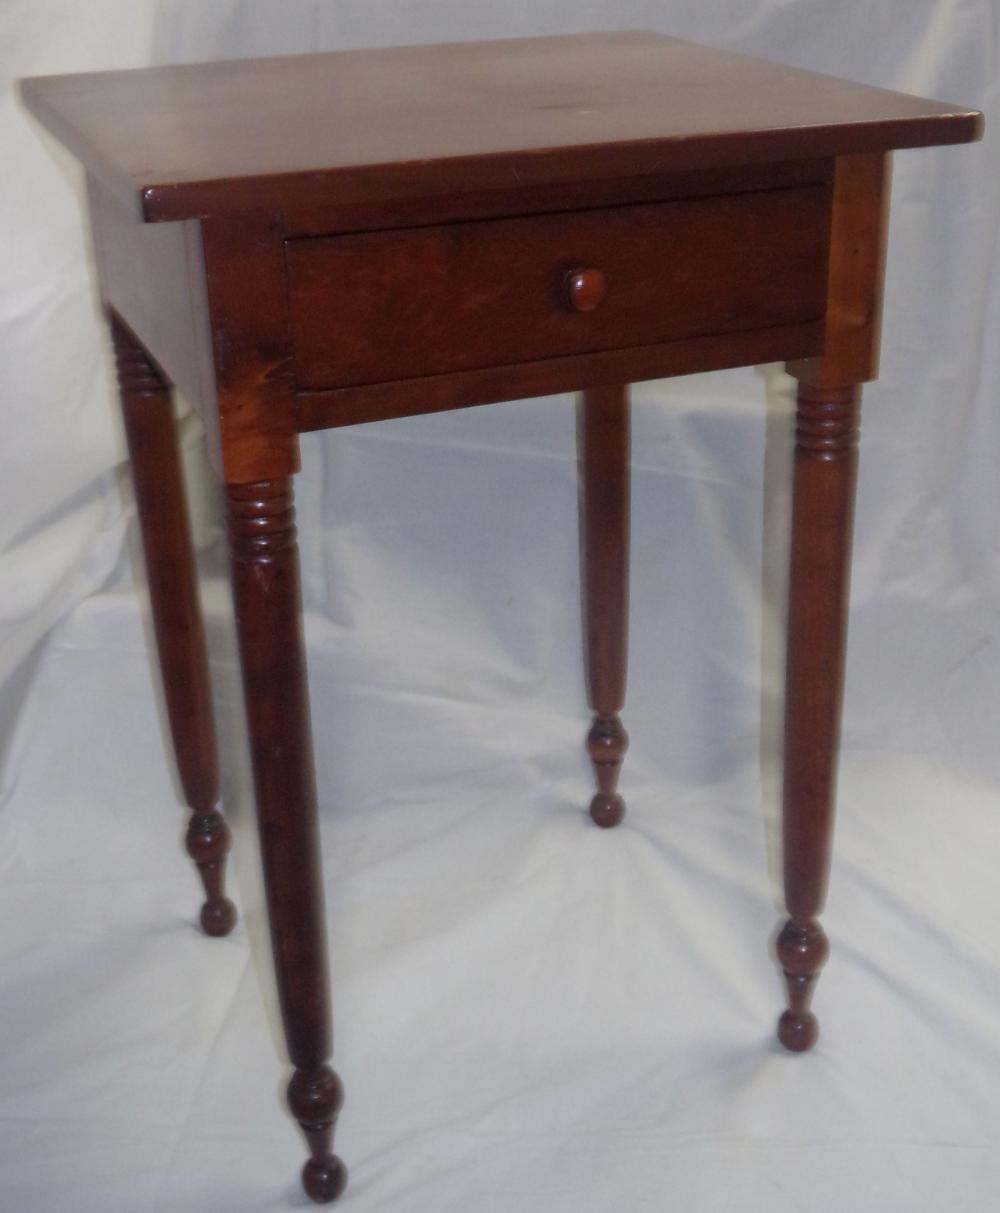 19th century/late Sheraton Cherry Work Table